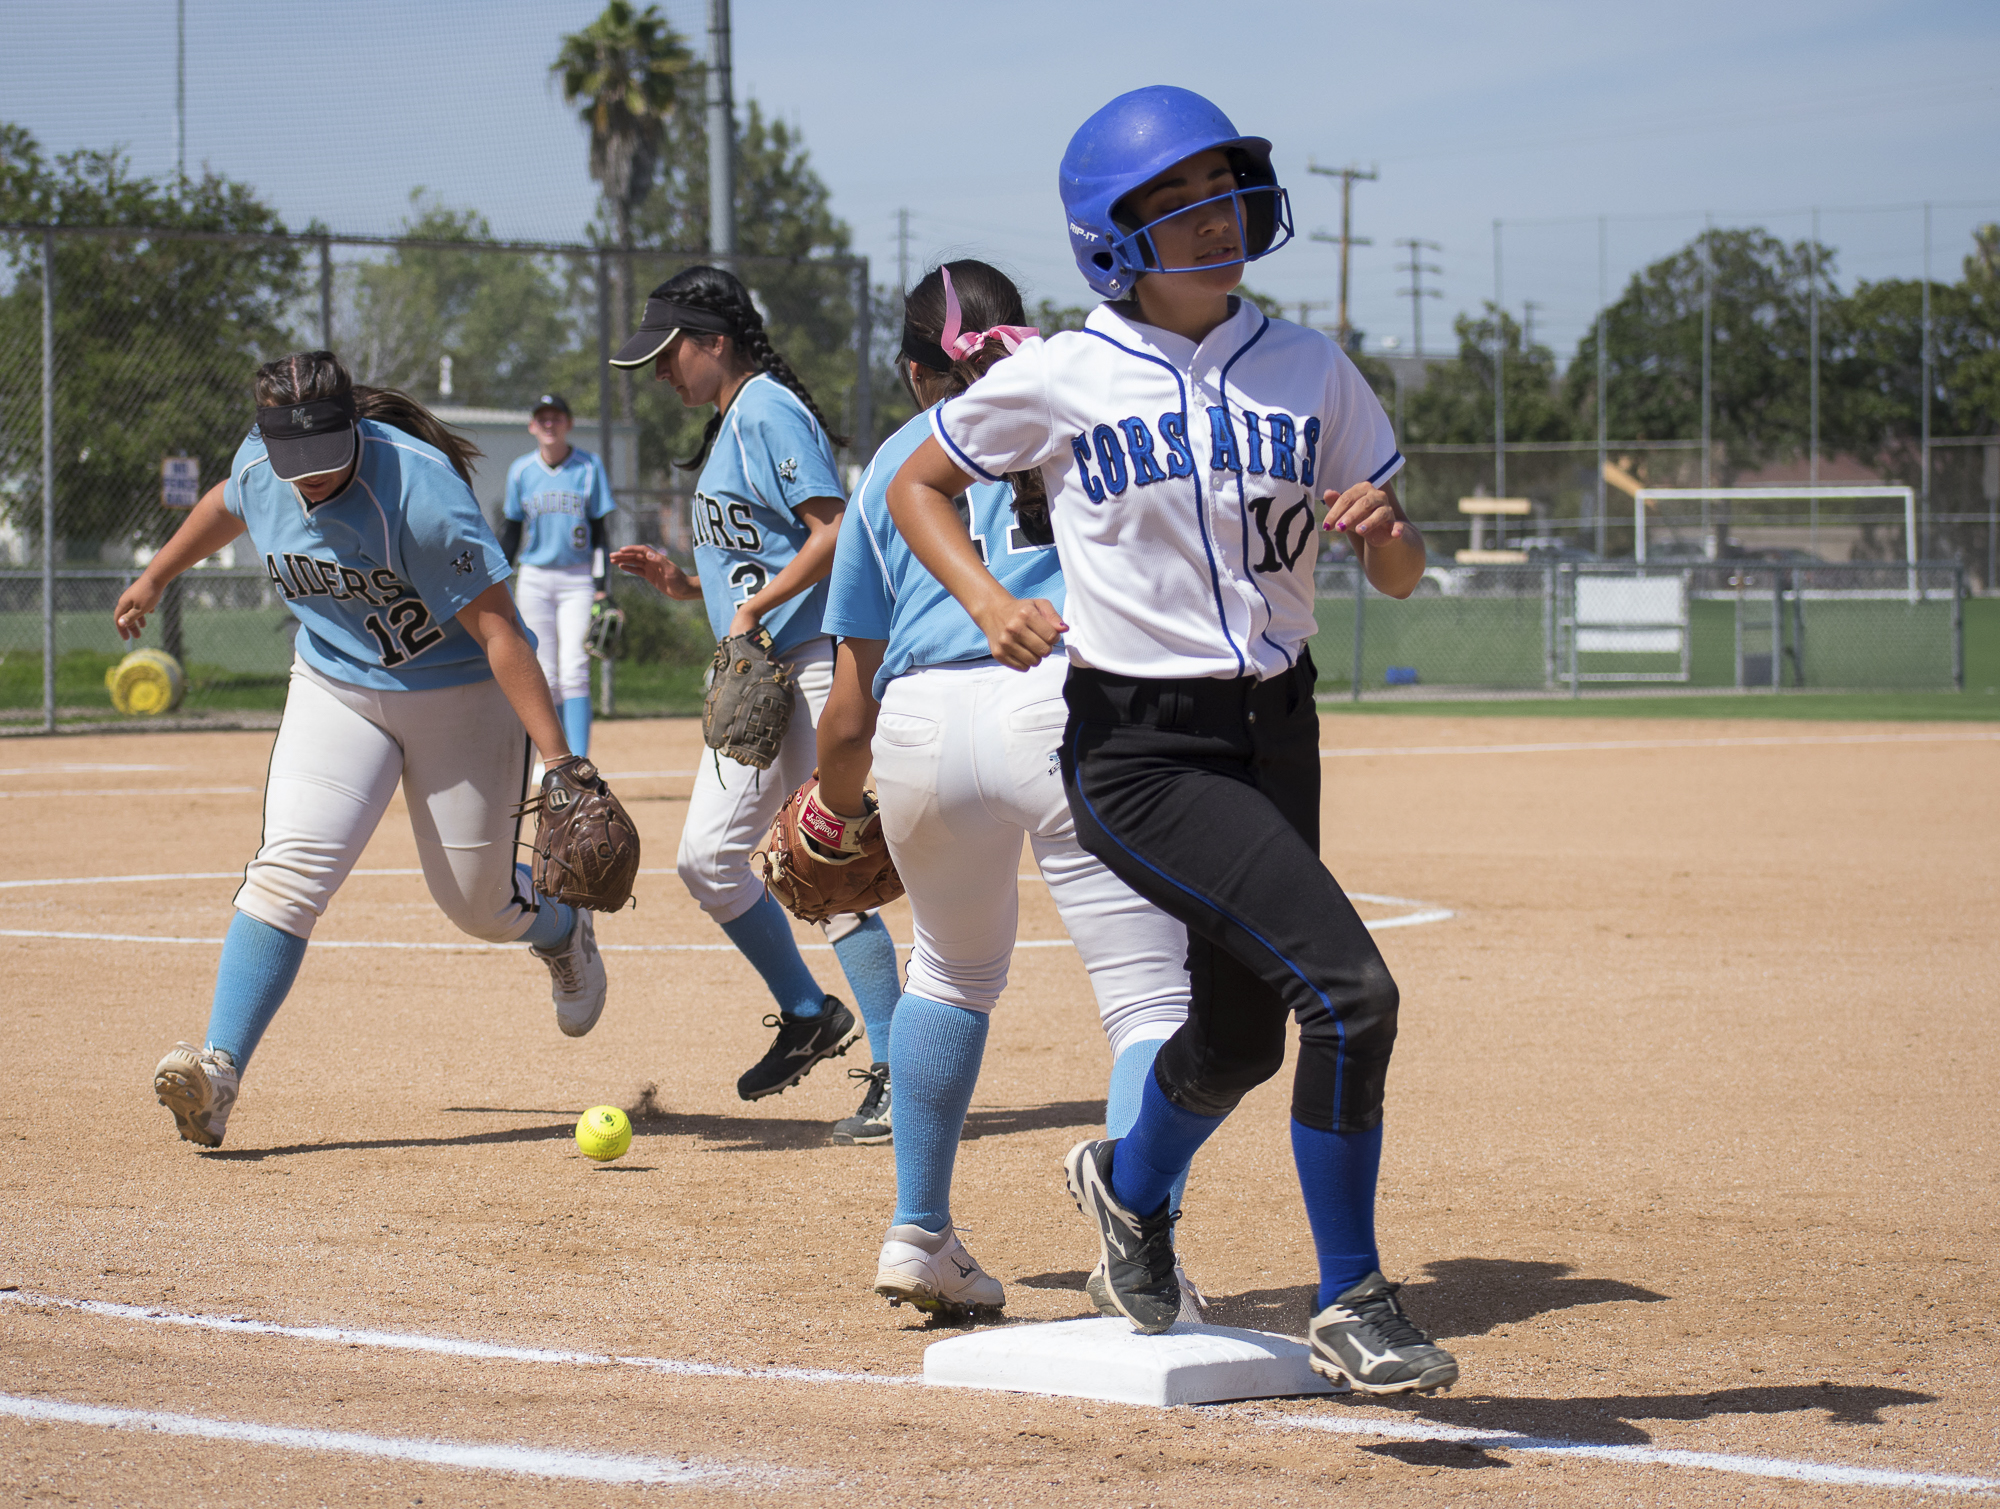 Santa Monica Corsairs Briana Osuna (#10) runs past first base during a softball game against the Moorpark College Raiders on Tuesday, April 10 at the John Adams Middle School Field in Santa Monica, California. The game ended with an 11-8 loss for the Corsairs, further continuing their six-game loss. (Ethan Lauren/Corsair Photo)